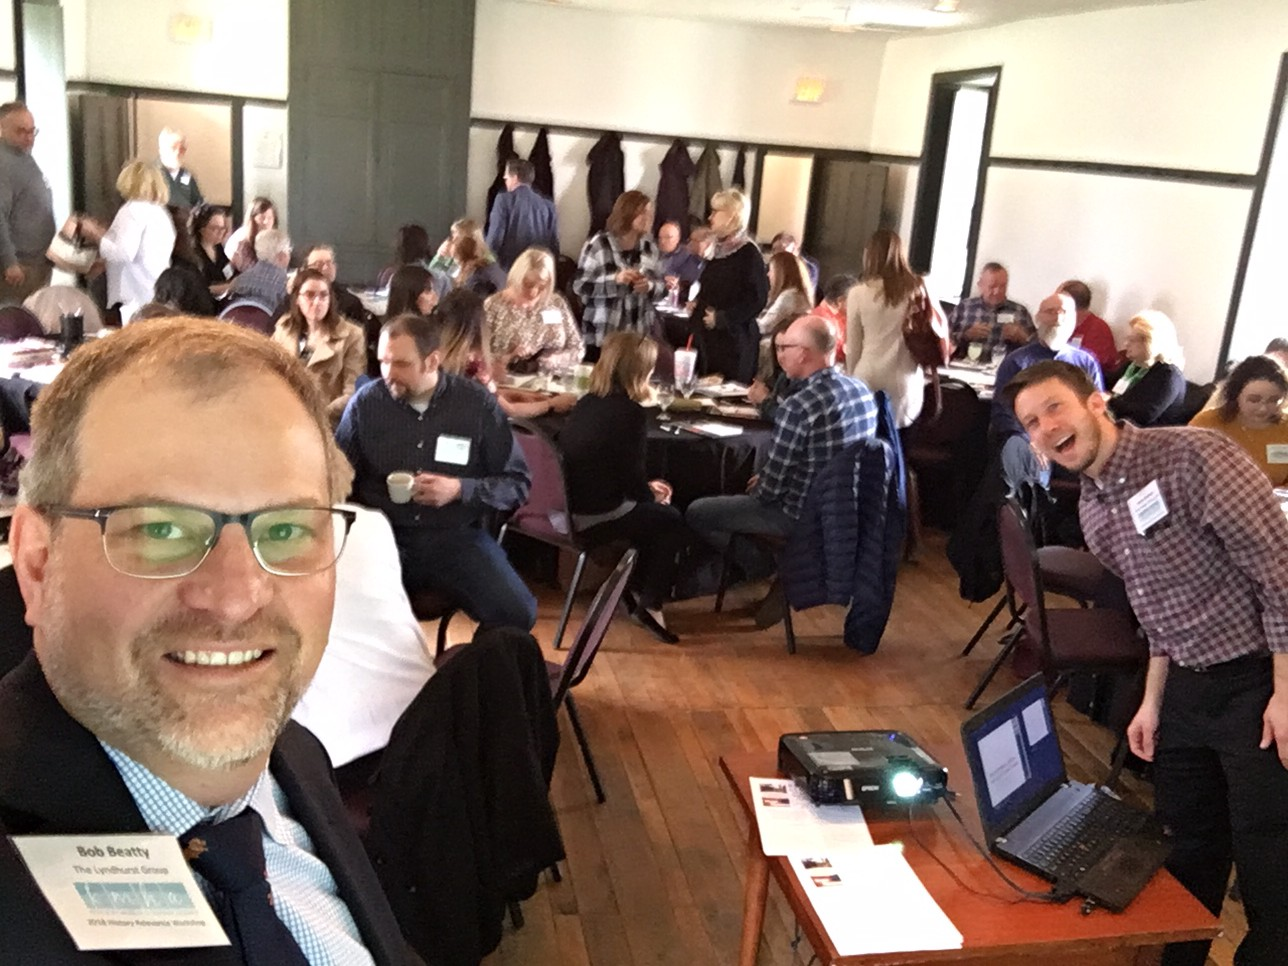 Bob Beatty takes a selfie image of the workshop room. He is in the bottom left corner of the frame wearing glasses with a large group of people seated around round tables behind him.